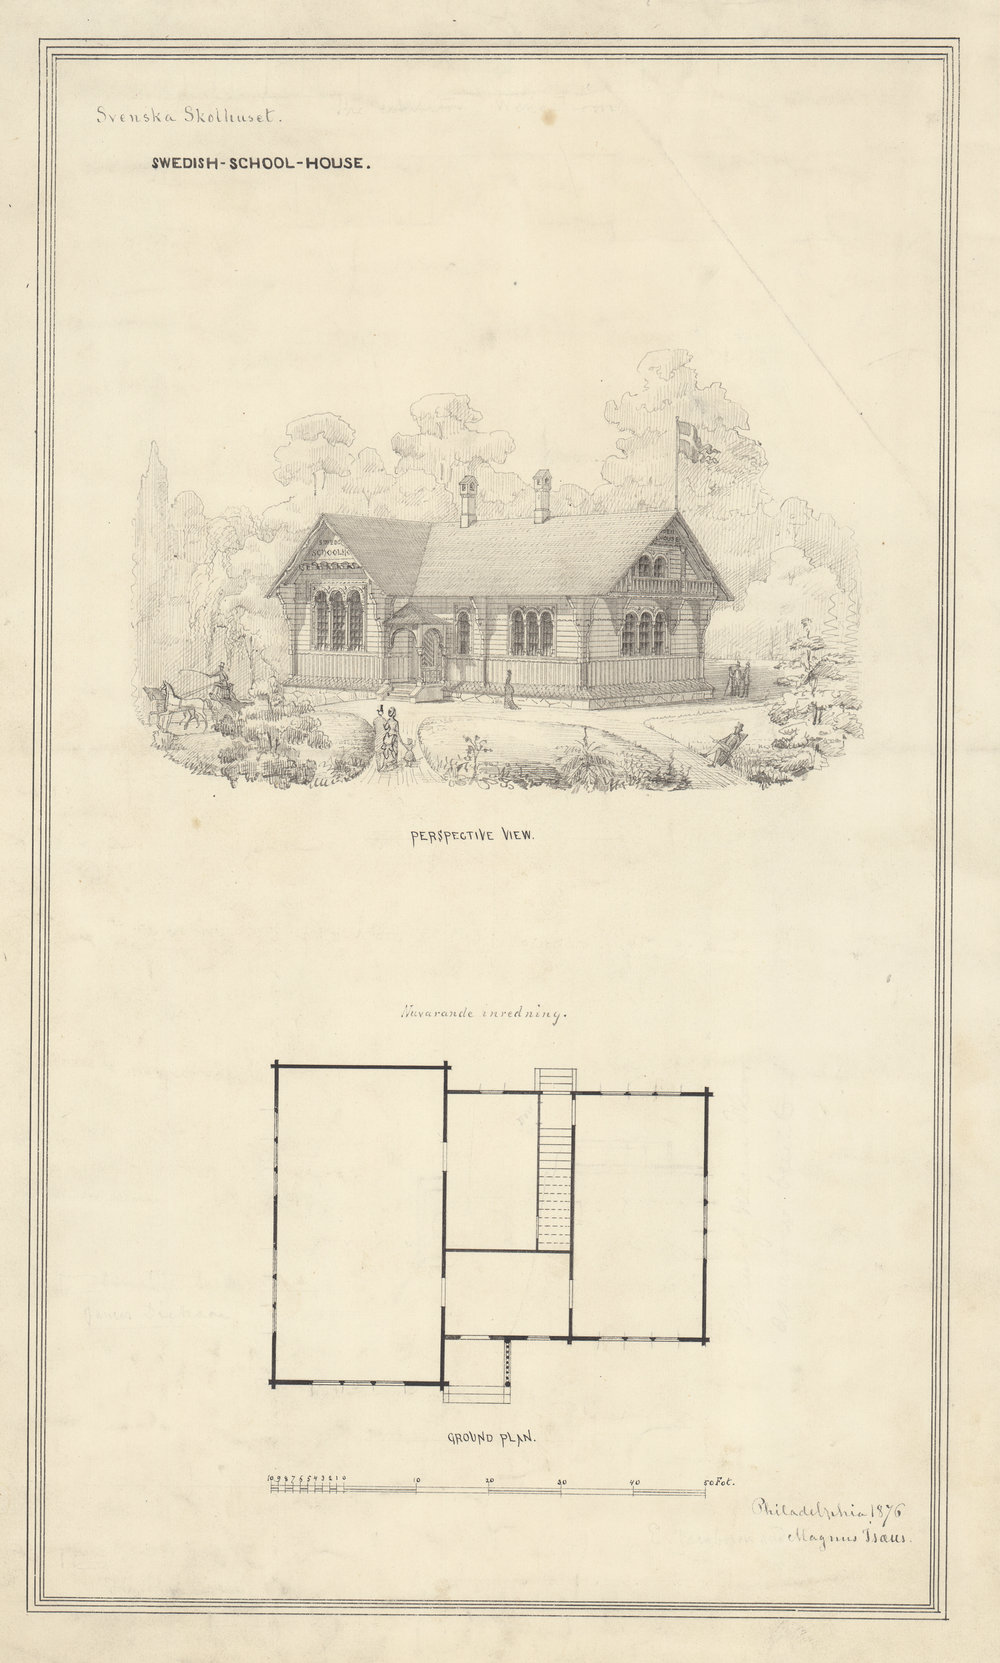 Swedish Schoolhouse (Svenska Skolhauset), perspective view and ground plan. Magnus Isaeus, architect, 1876. Black ink and pencil on paper, 21 x 14 inches.  The Swedish Schoolhouse is the only structure in park that was originally designed for something other than Central Park